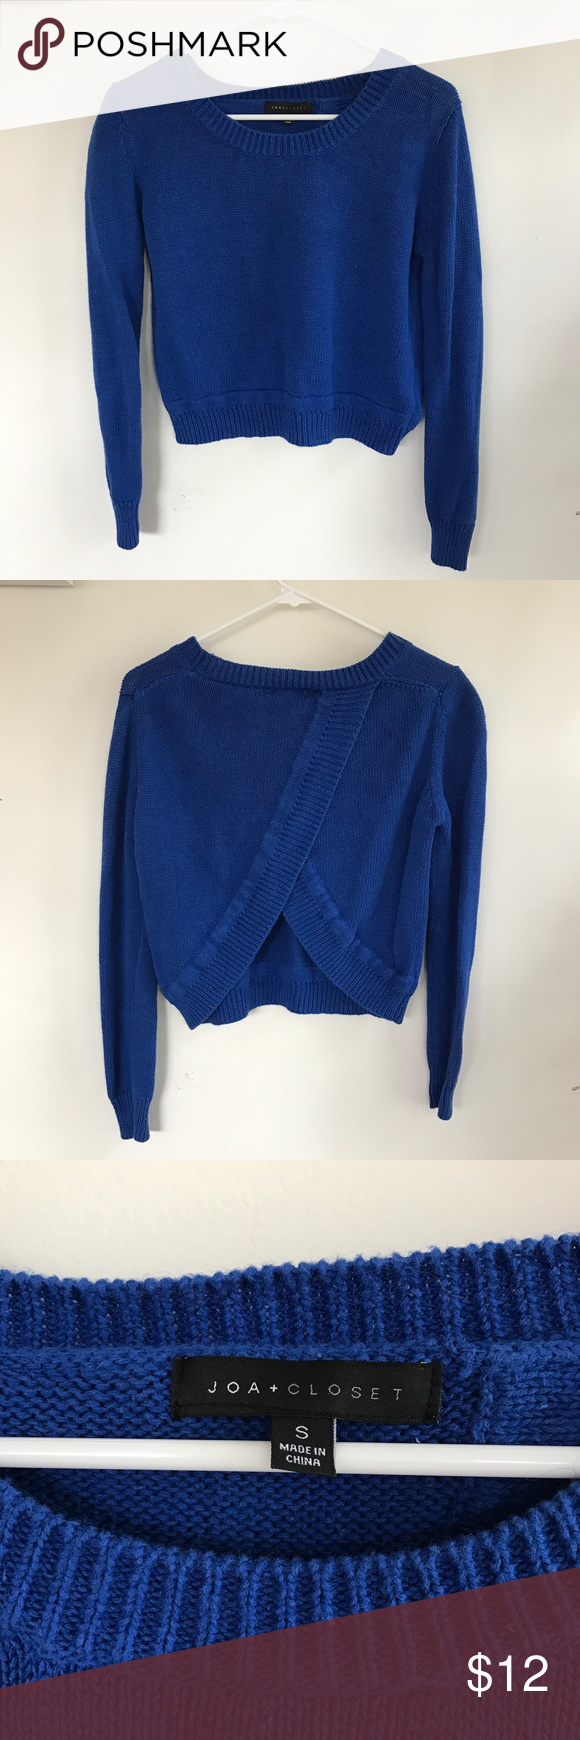 JOA + CLOSET Crop Sweater JOA + CLOSET Crop Sweater.  Worn 2 times.  Good condition. Joa + Closet Sweaters